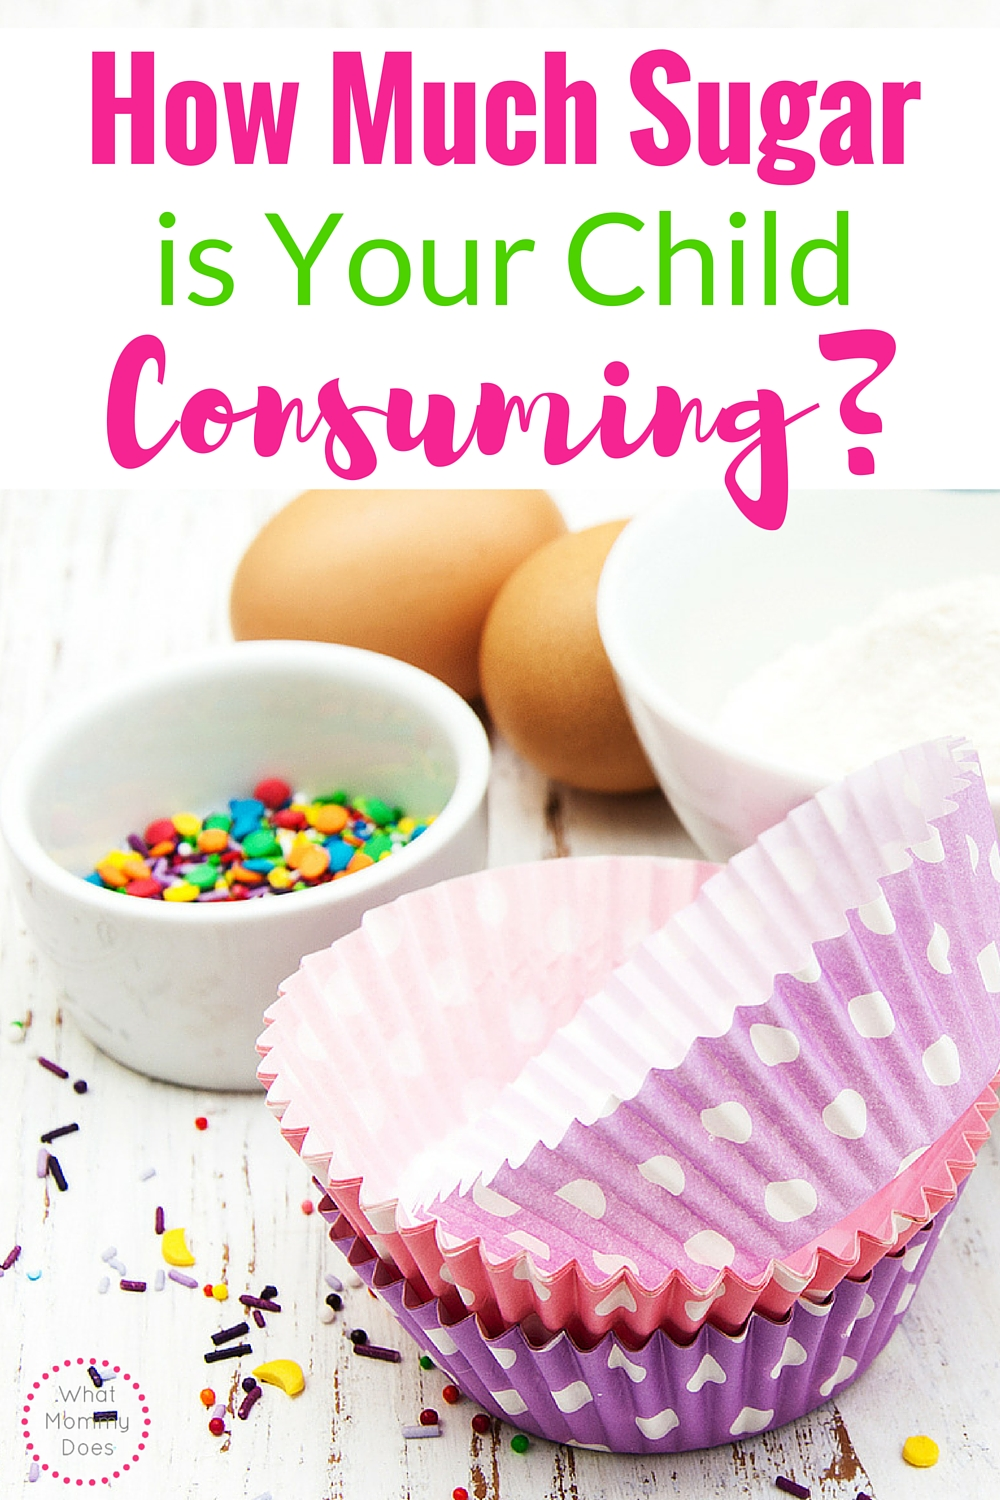 Too Much Sugar for Kids - Is excess sugar consumption child abuse? It is becoming a real health problem, and children need to know the importance of healthy eating!